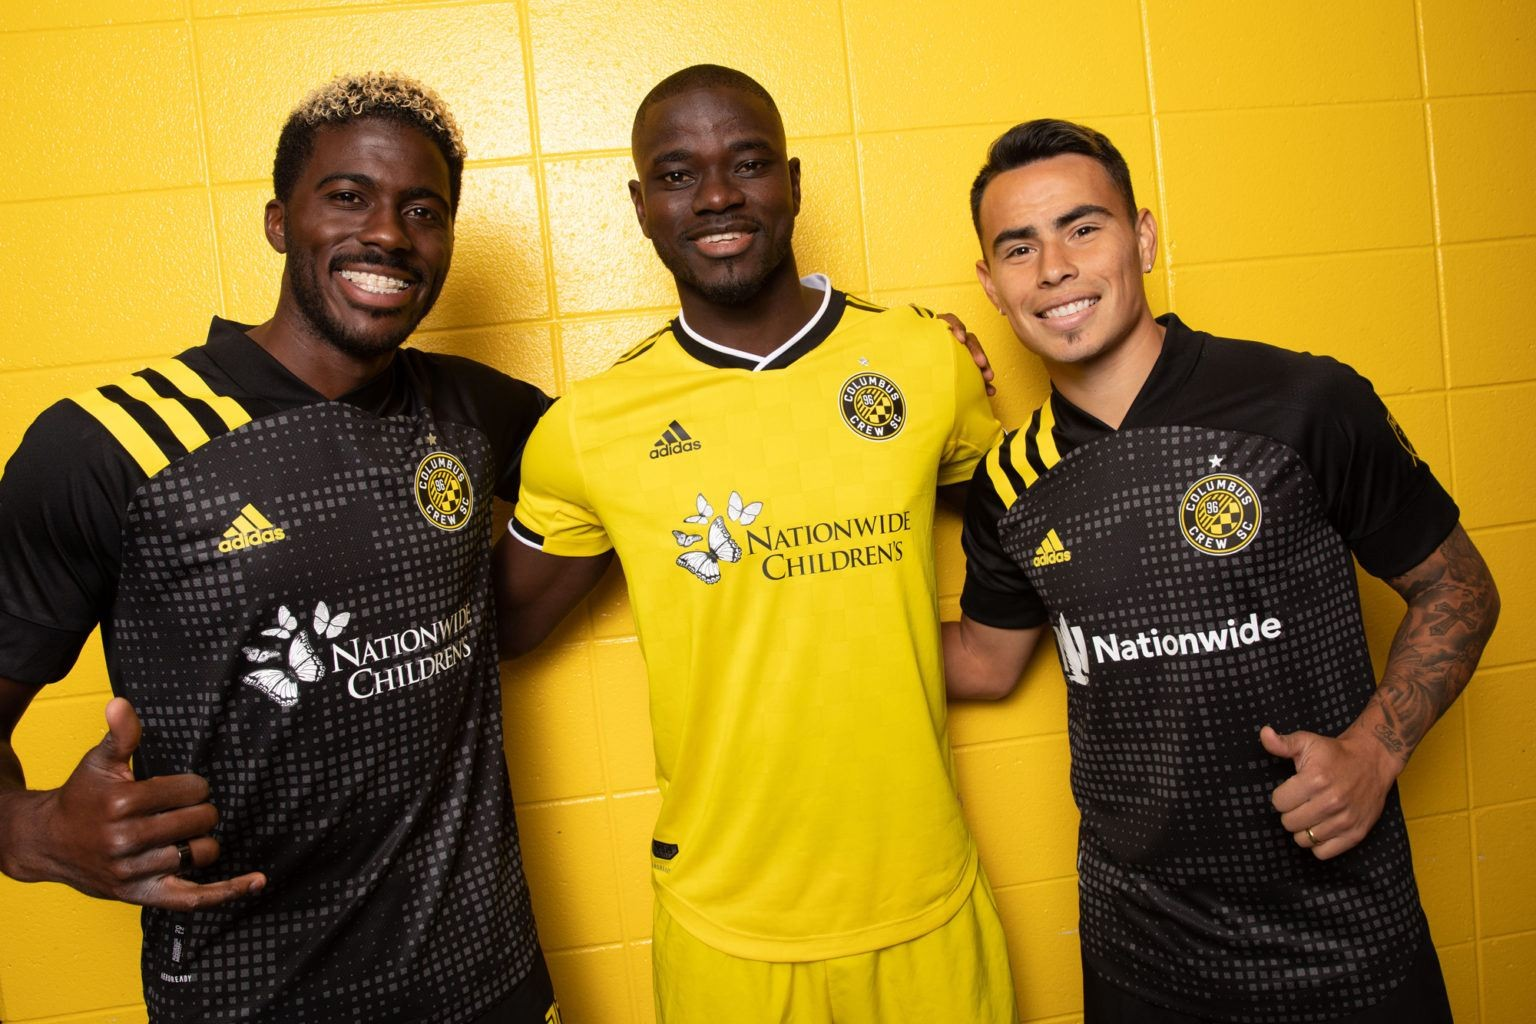 Nationwide scores new sponsorship with Columbus Crew